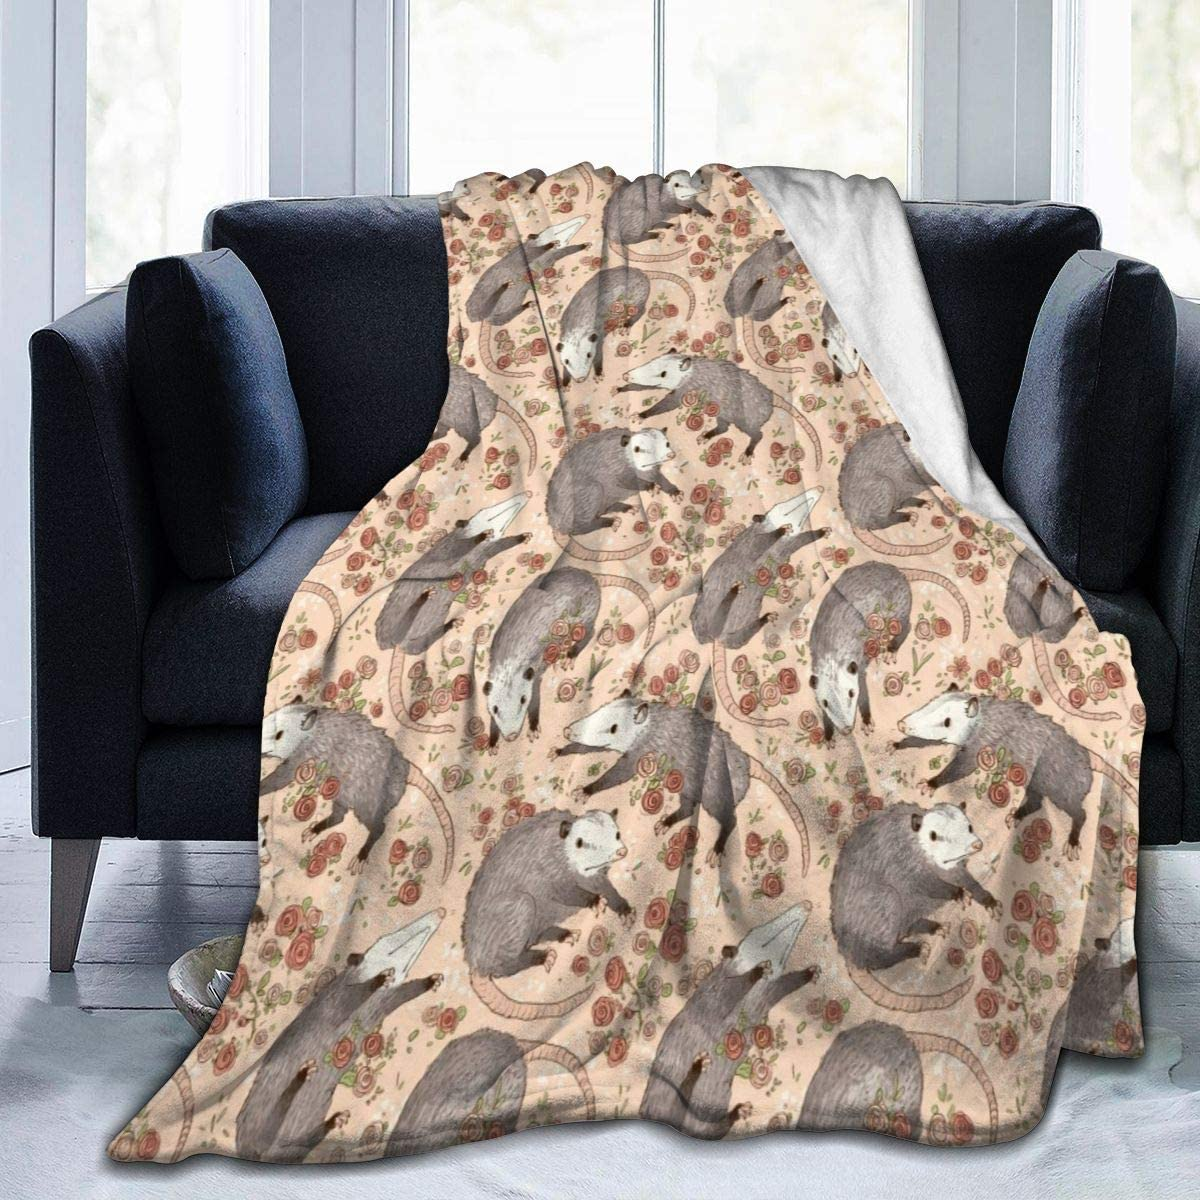 Large Throw Blanket Befuddled Possums Flowers Micro Fleece Blanket Comfy Premium Flannel Fleece Blanket Comfortable Thermal Blankets Durable Pad Bed Cover Warm Sofa Blanket for All Season